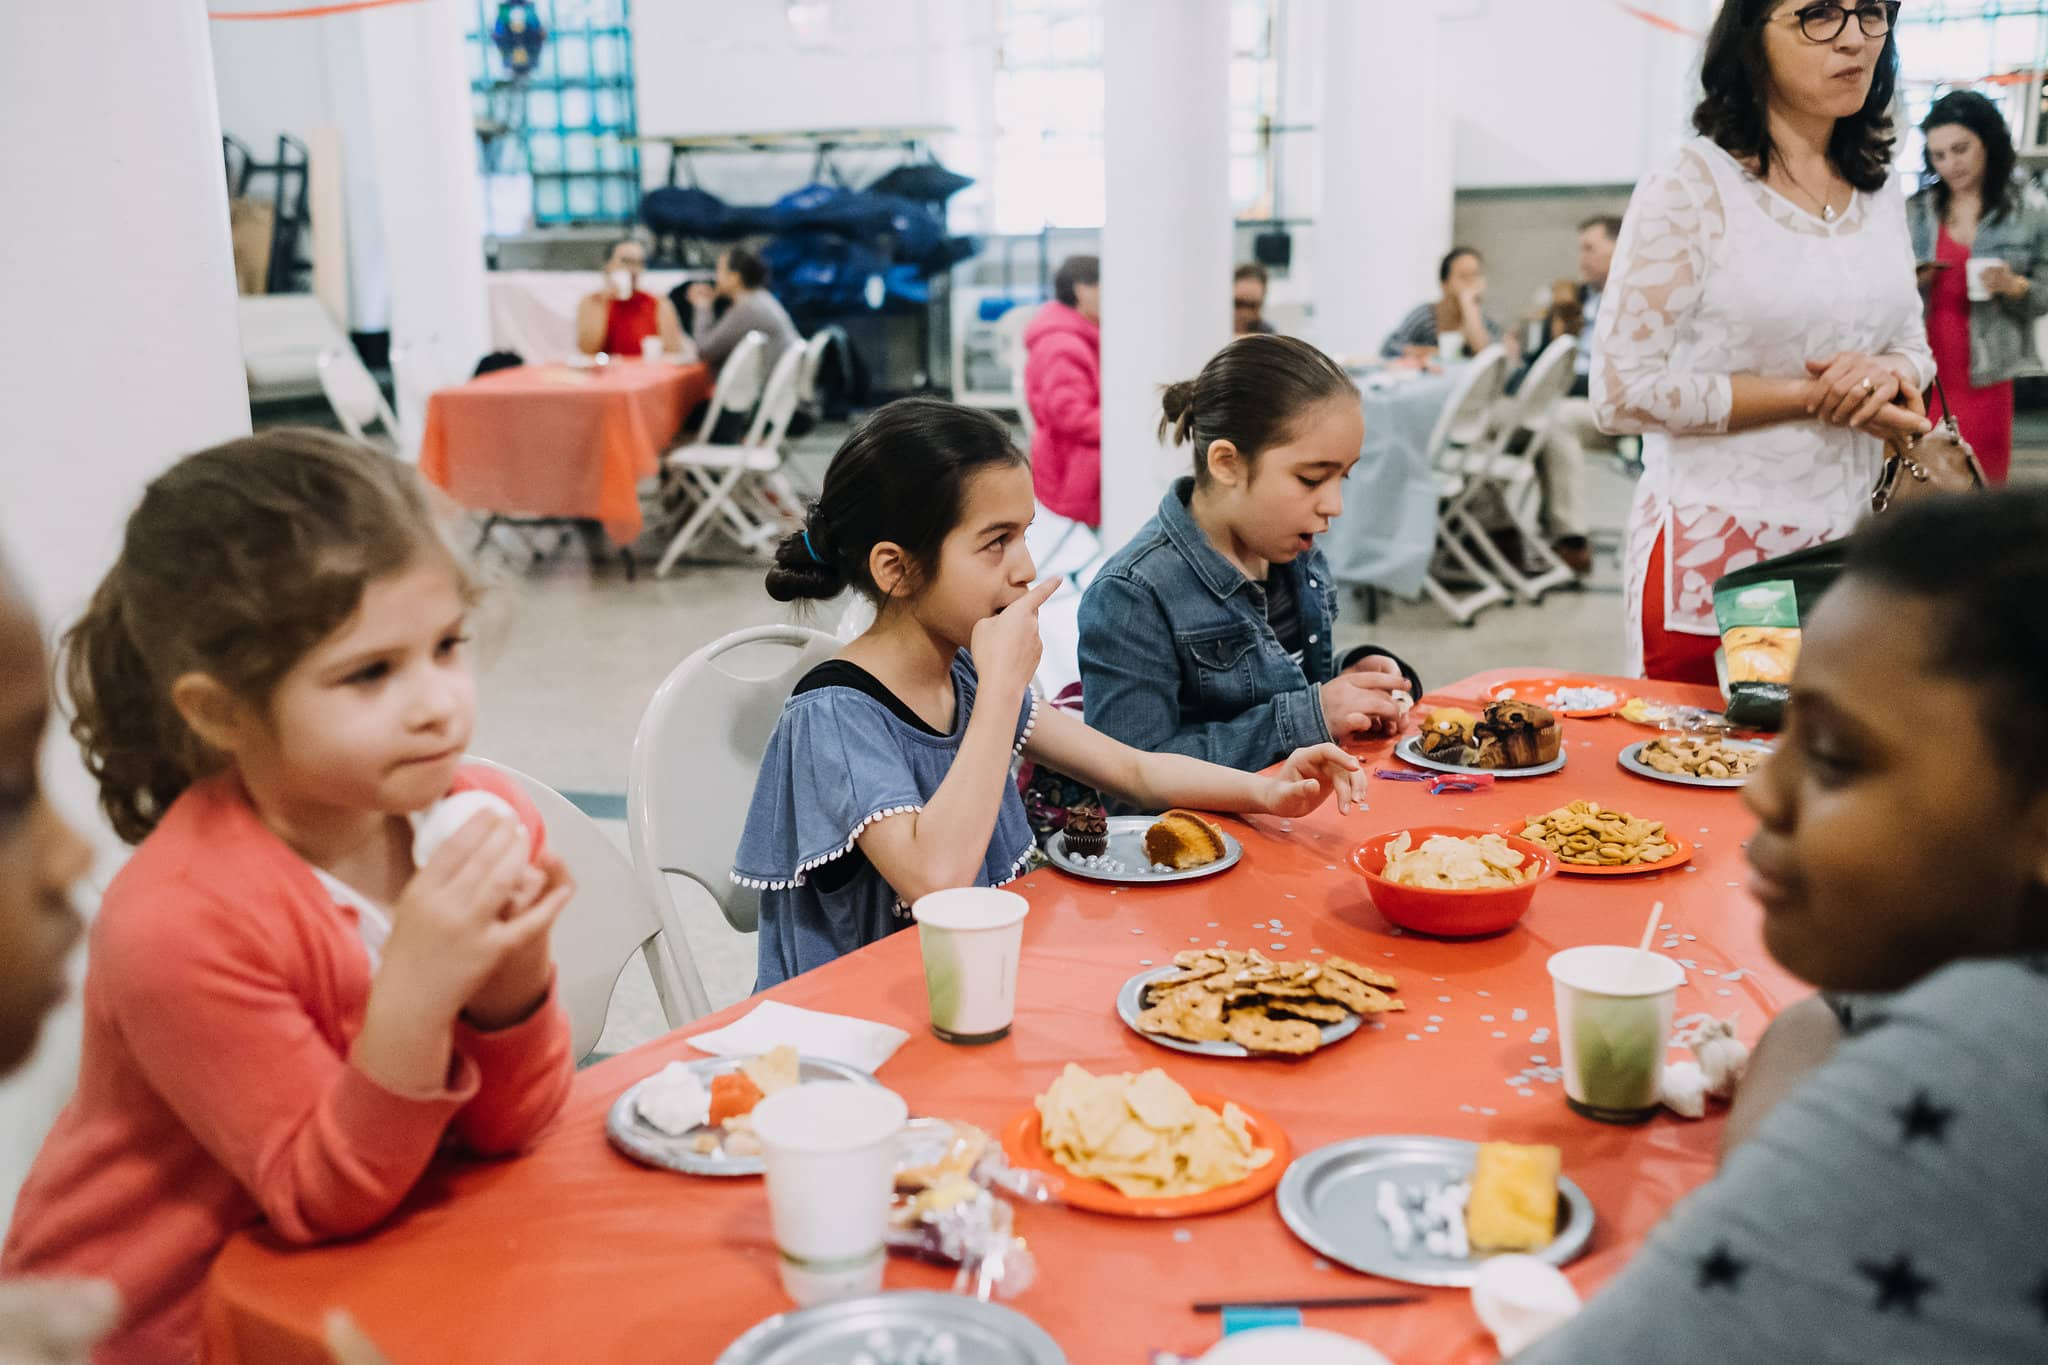 eating-kids-youth-fun-family-community-st-francis-de-sales-church-new-york-city.jpg